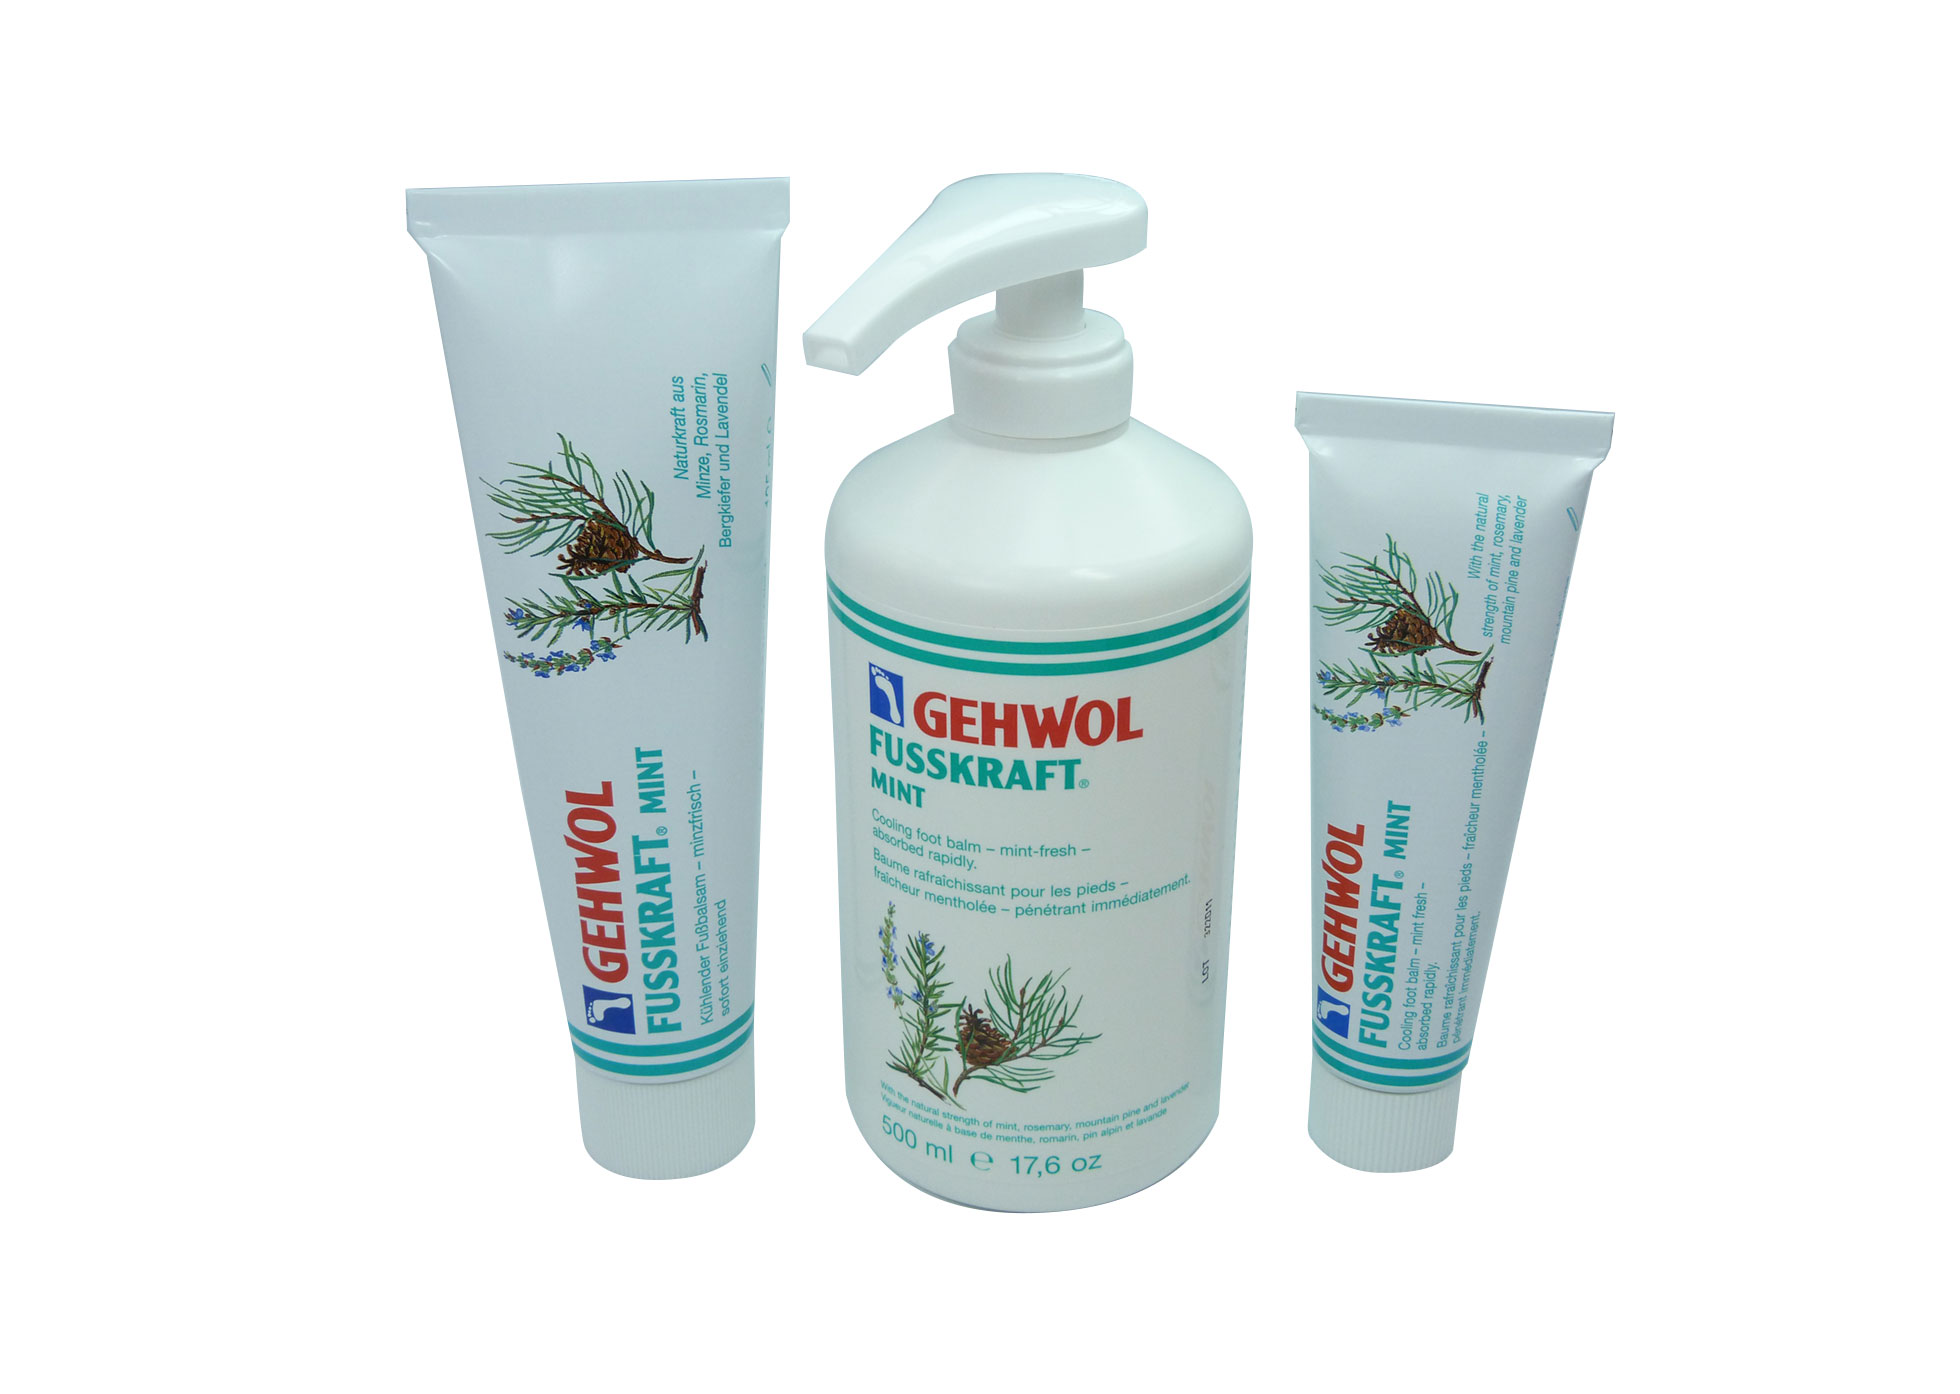 Gehwol - Fusskraft Mint - 125ml Tube